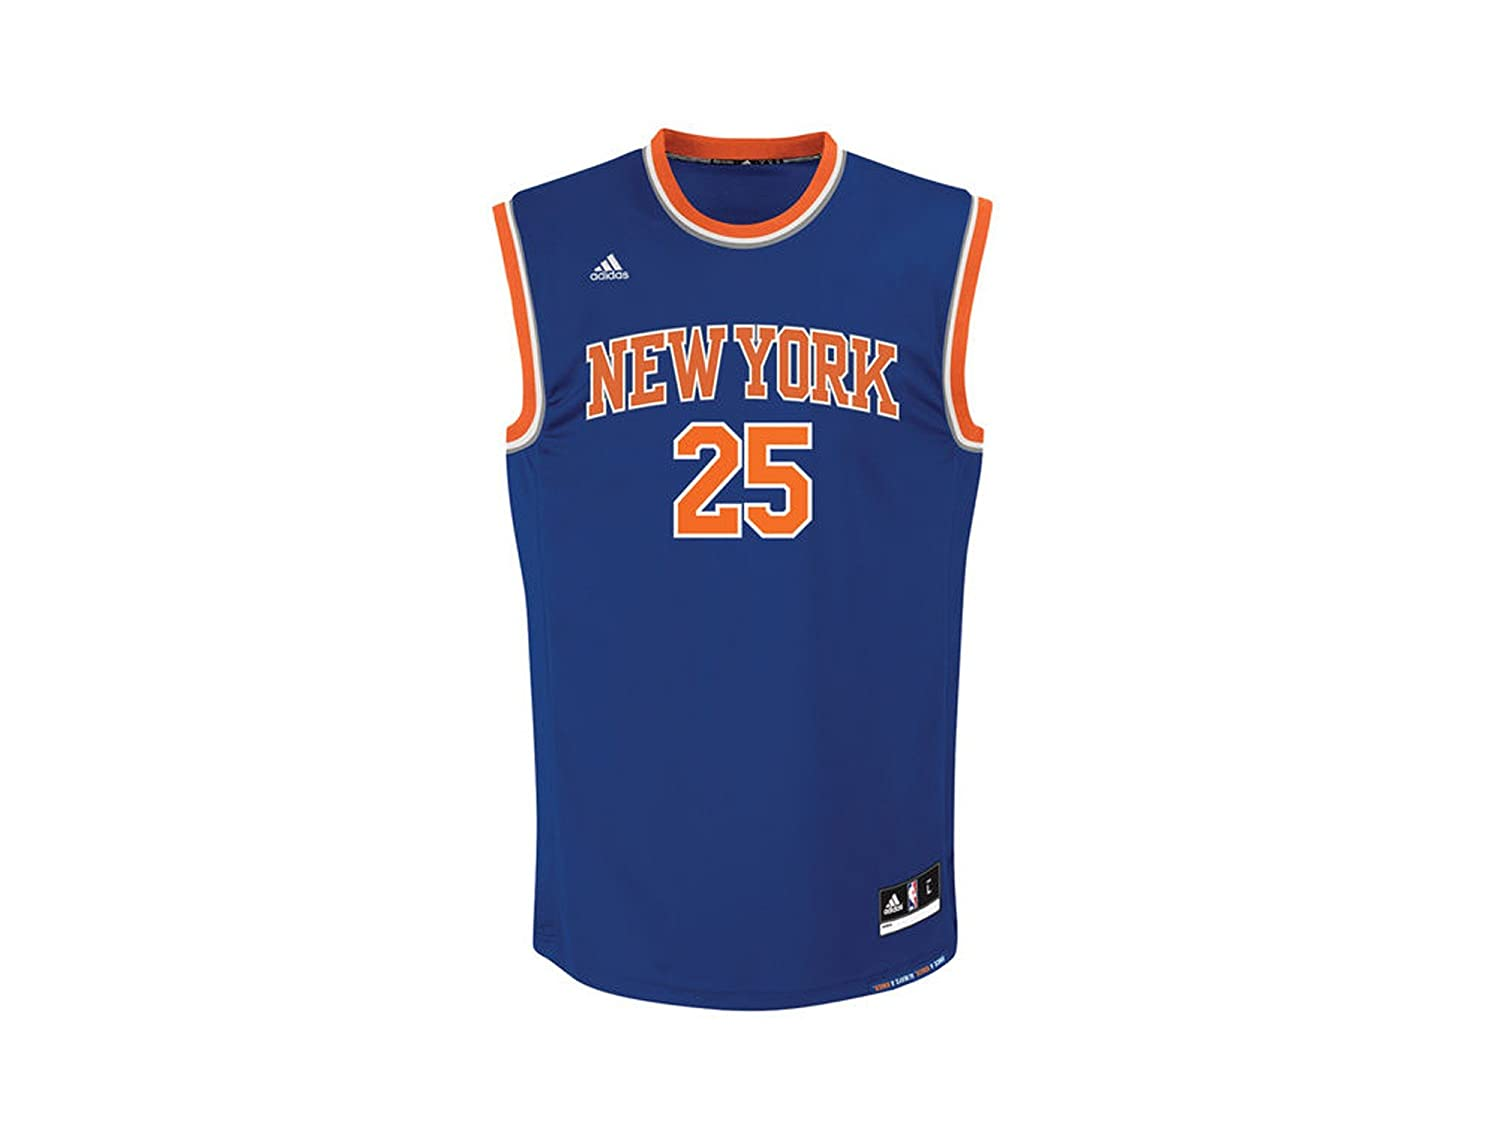 Adidas INT Replica Jrsy Camiseta de Baloncesto New York Knicks, Hombre CB9995